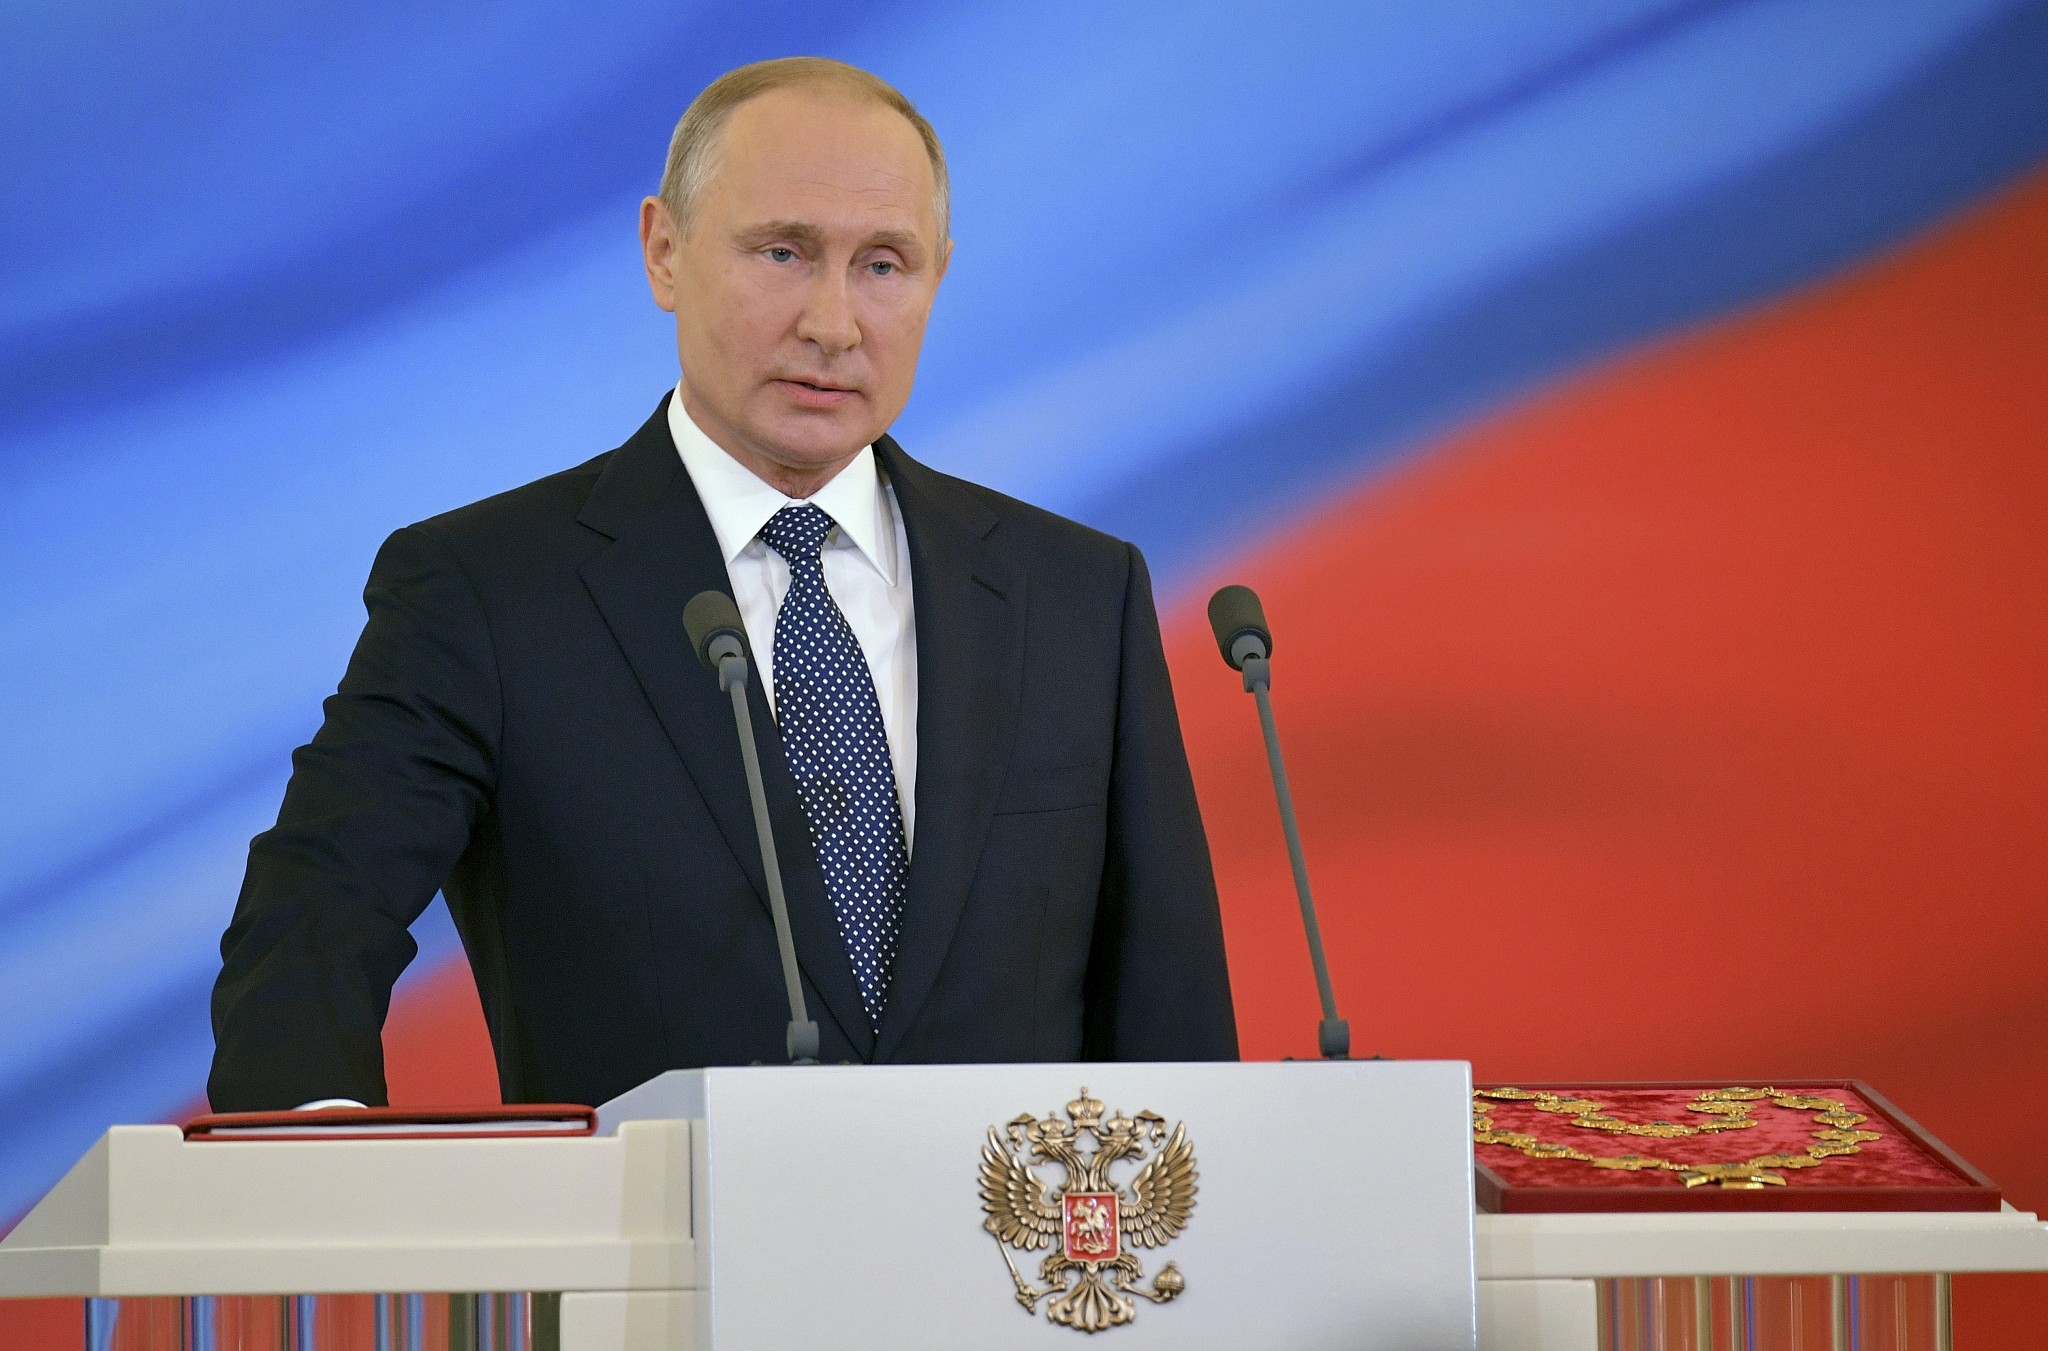 Putin Sworn In For Fourth Term As Russian President The Times Of Israel